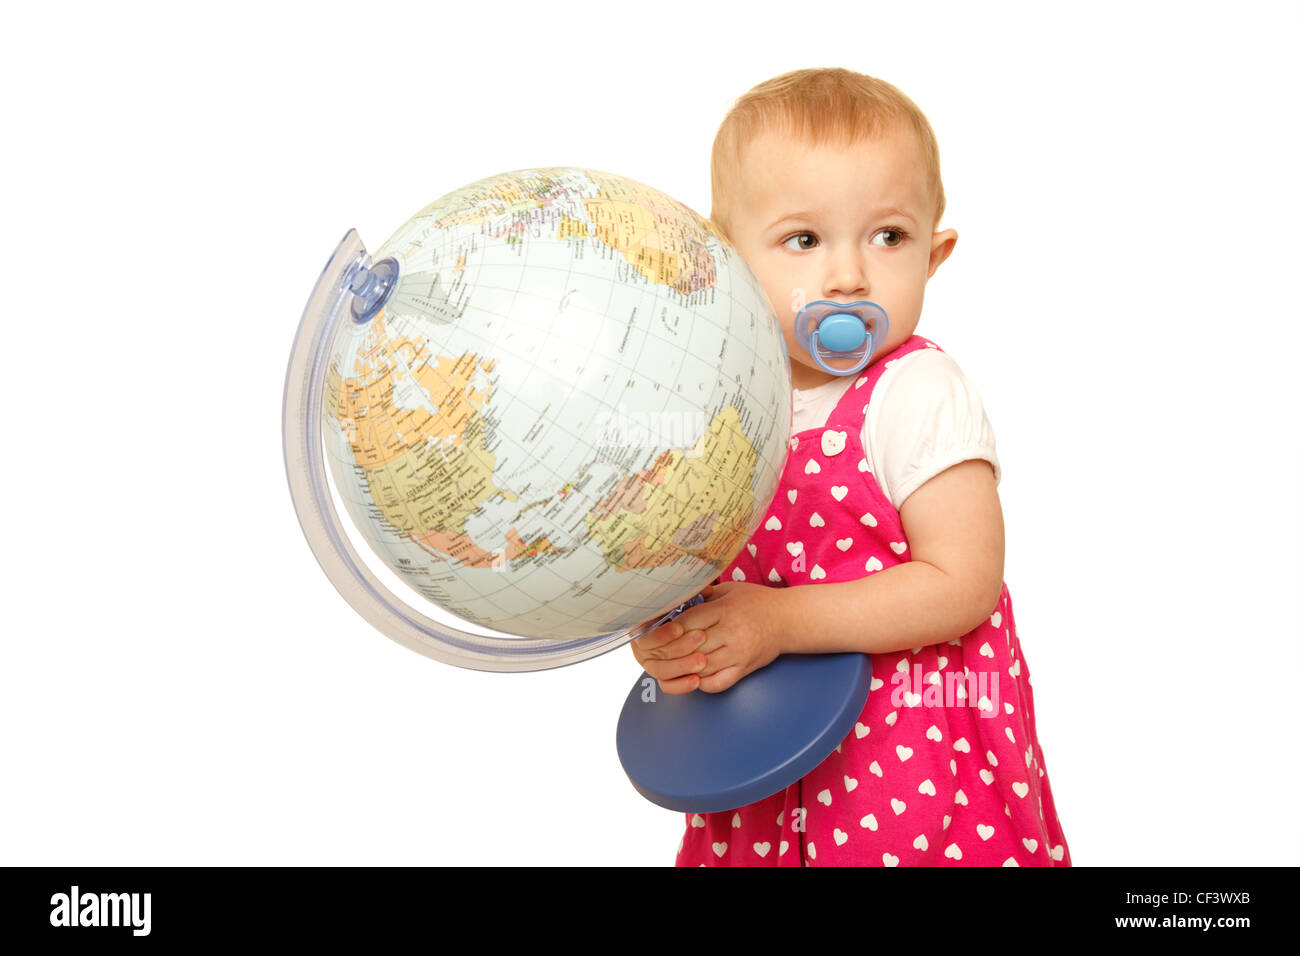 Portrait of little girl with globe in hands, on it. White background.  Horizontal format. - Stock Image